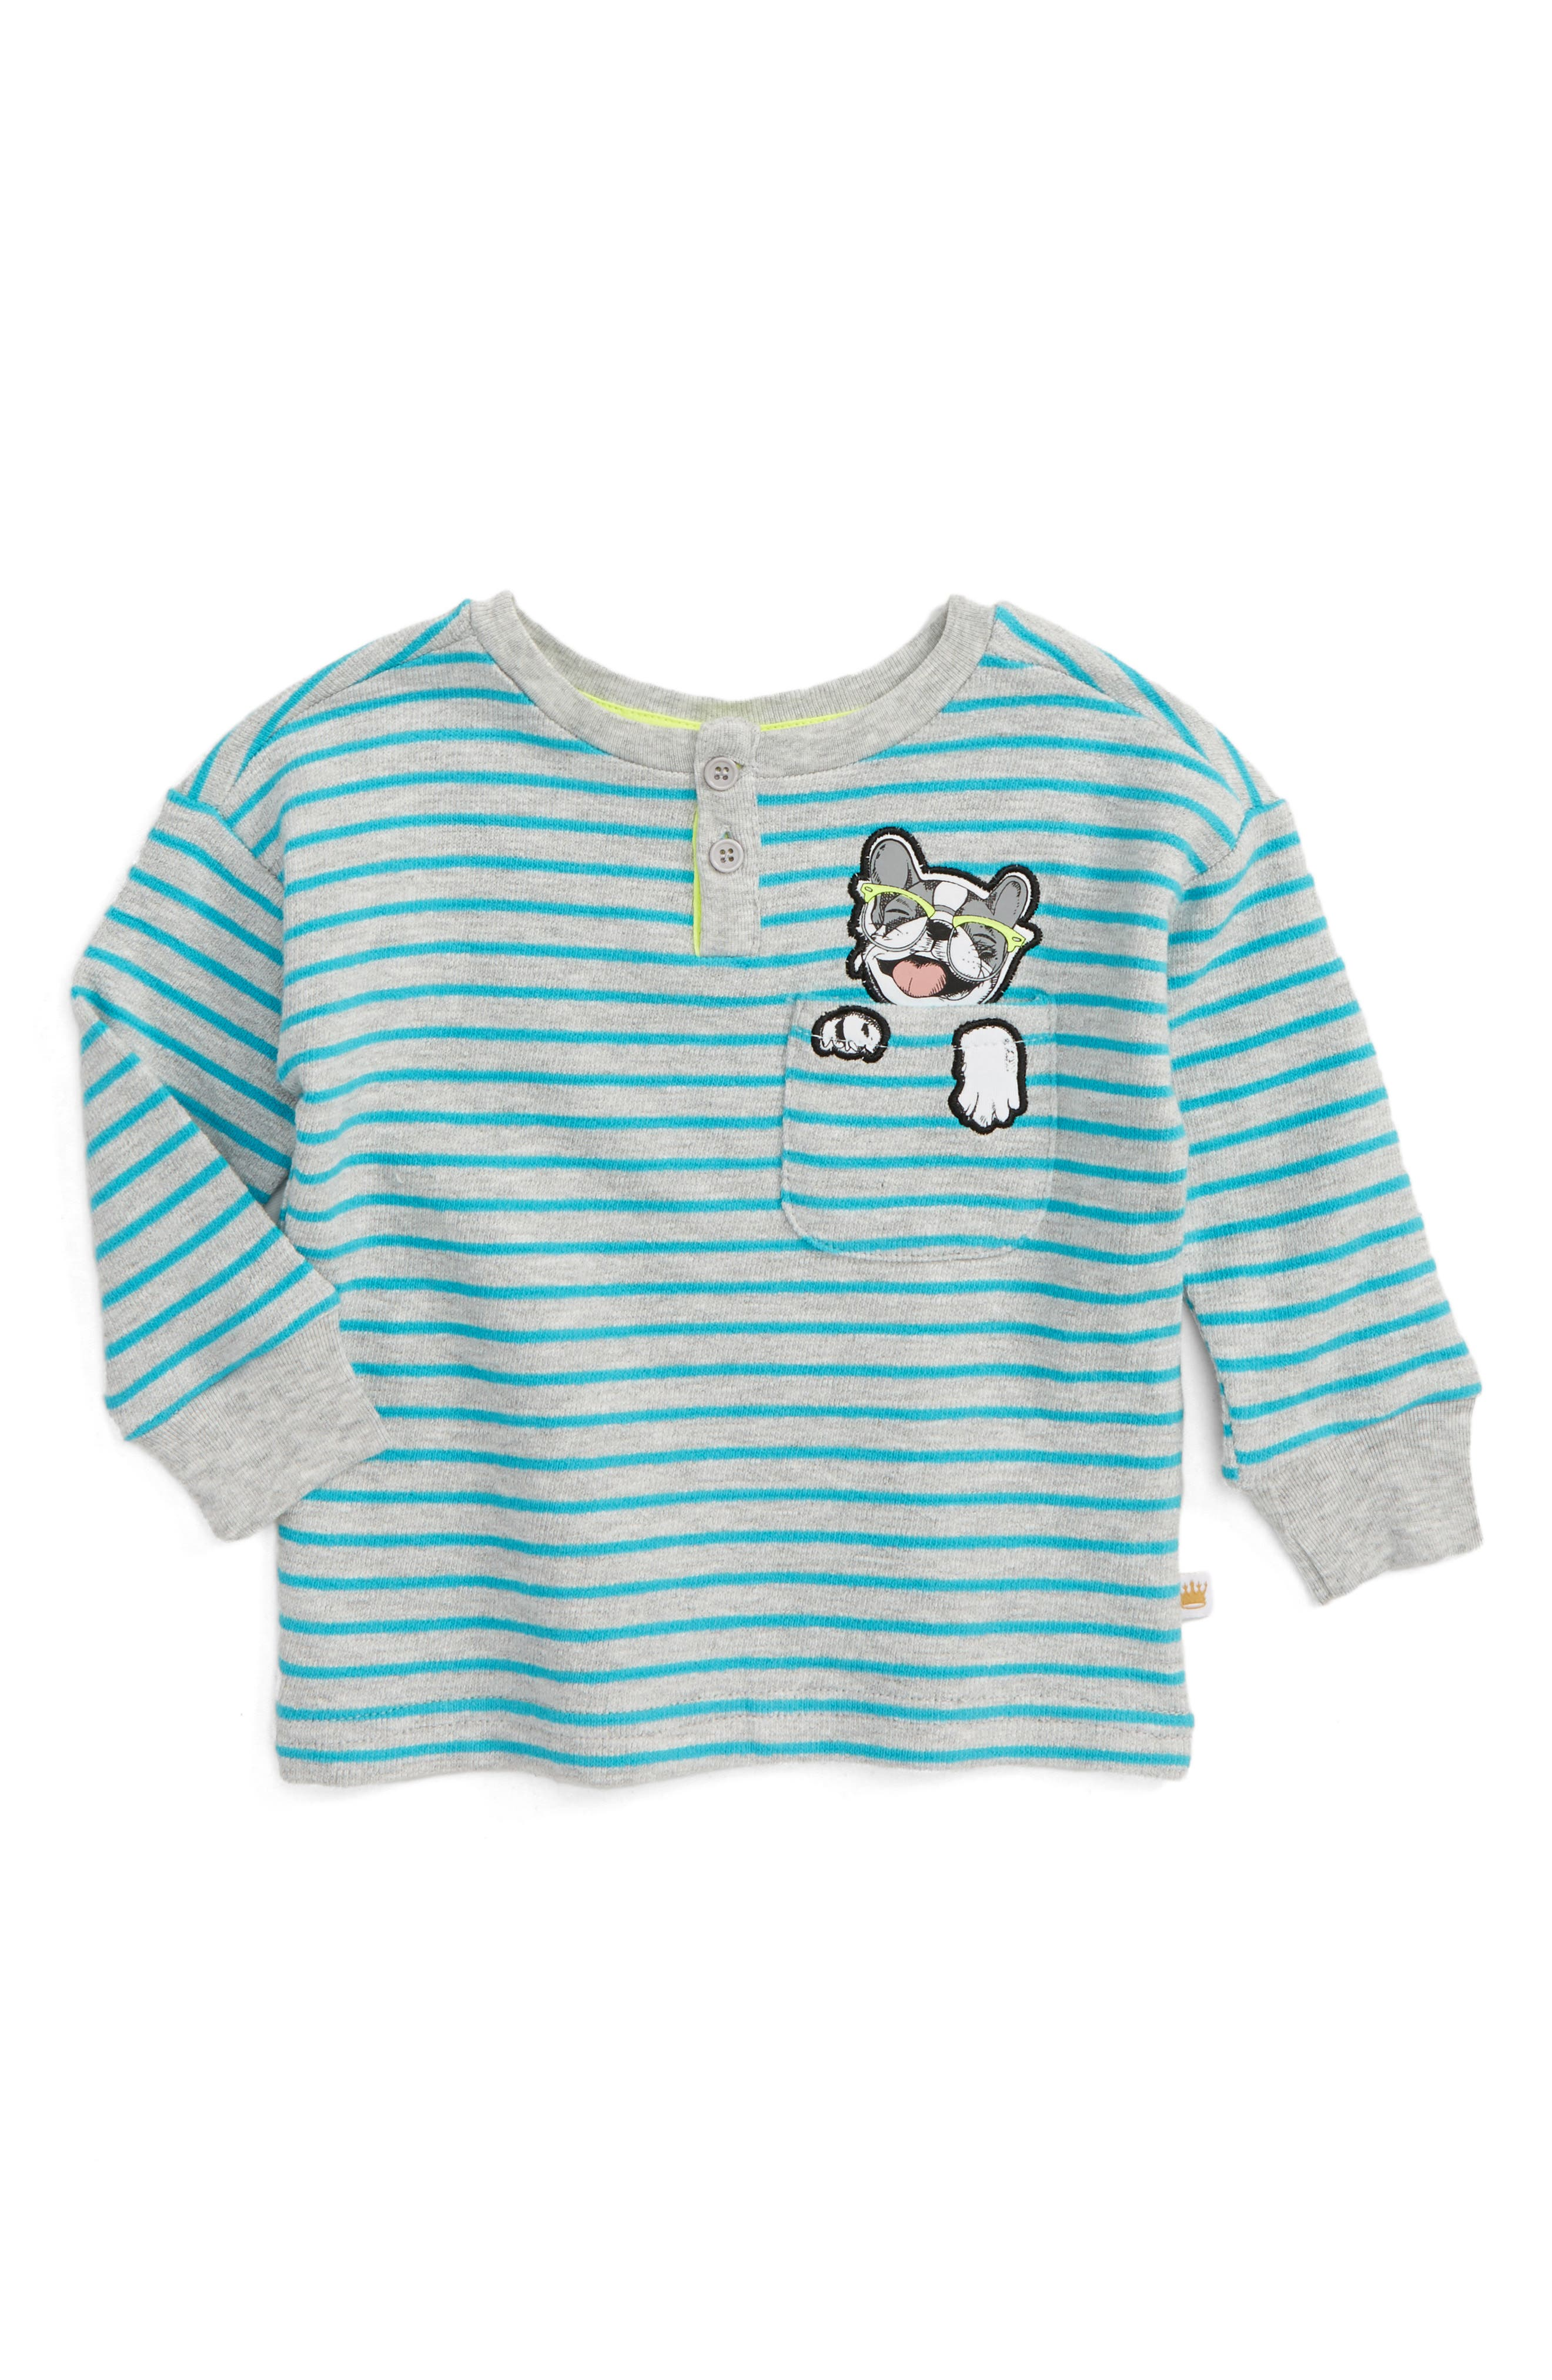 Alternate Image 1 Selected - Rosie Pope Pocket Pup Appliqué Stripe Shirt (Baby Boys)